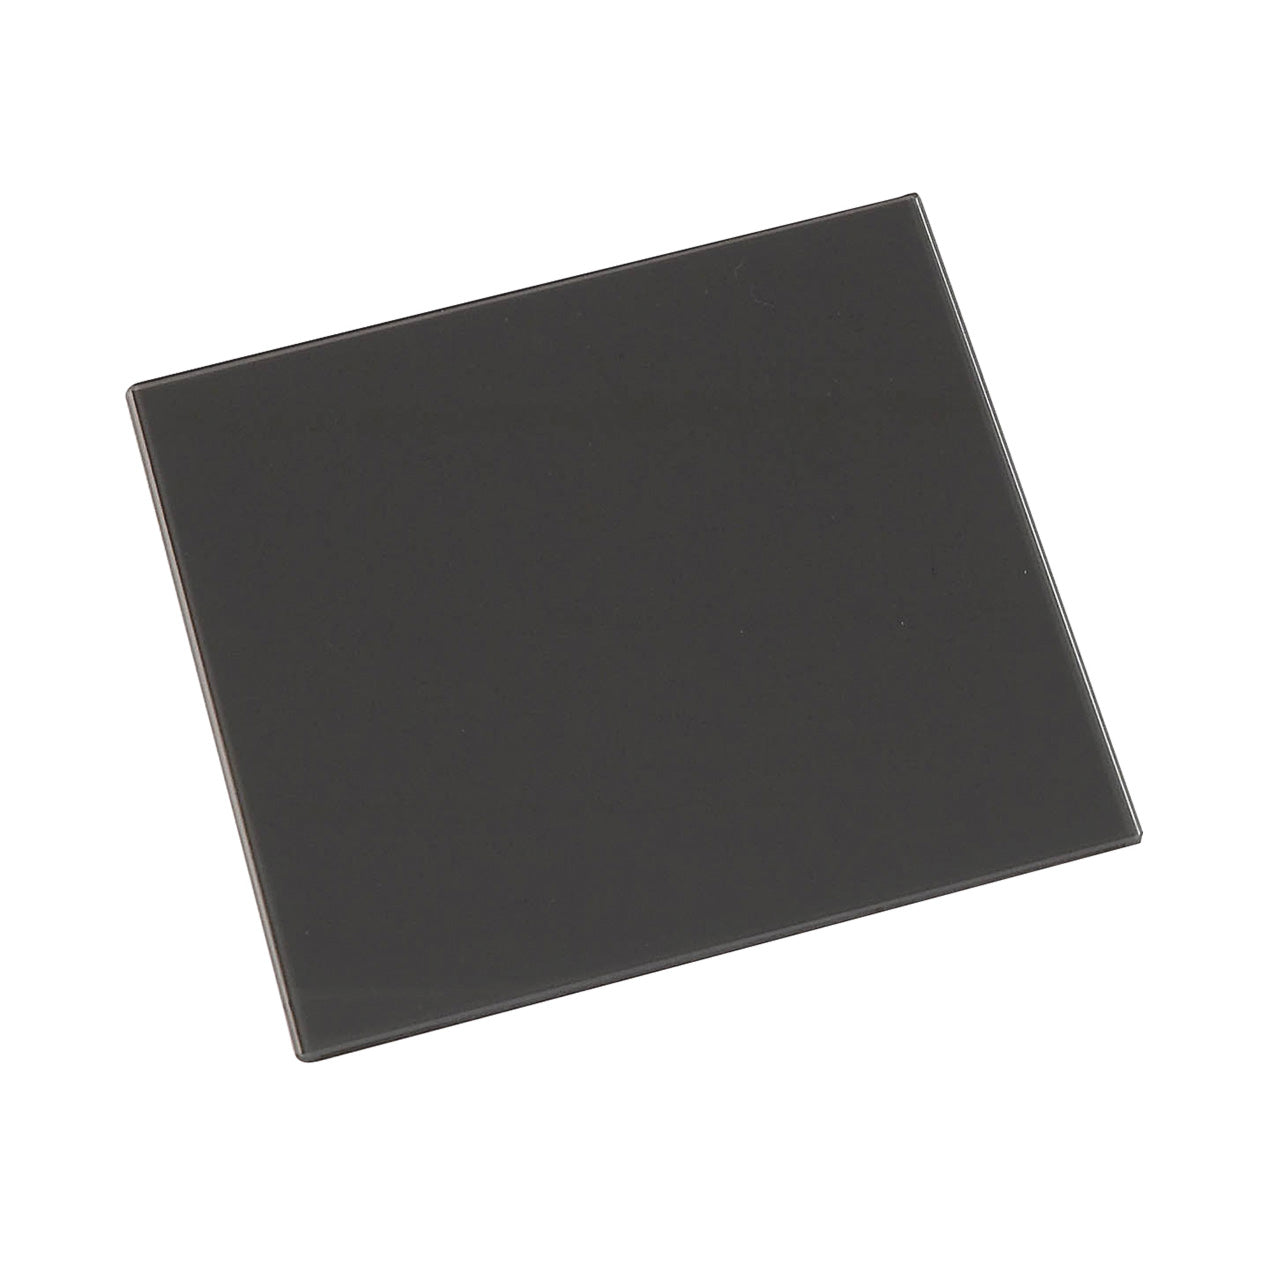 Lee Neutral Density 0.9 Resin Filter 100x100mm